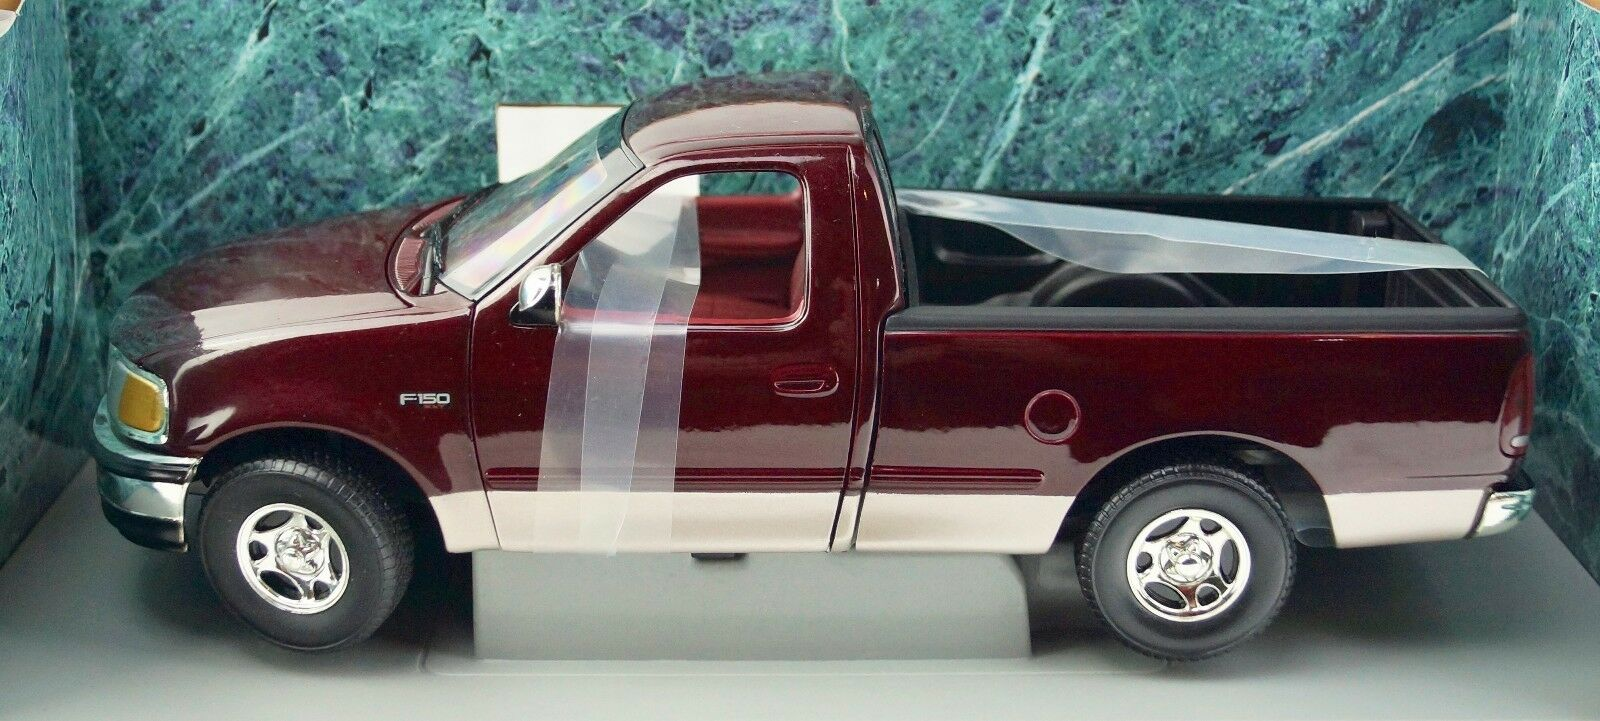 1997 Ford F150 XLT 1 18 American Muscle Collector's Edtion, New